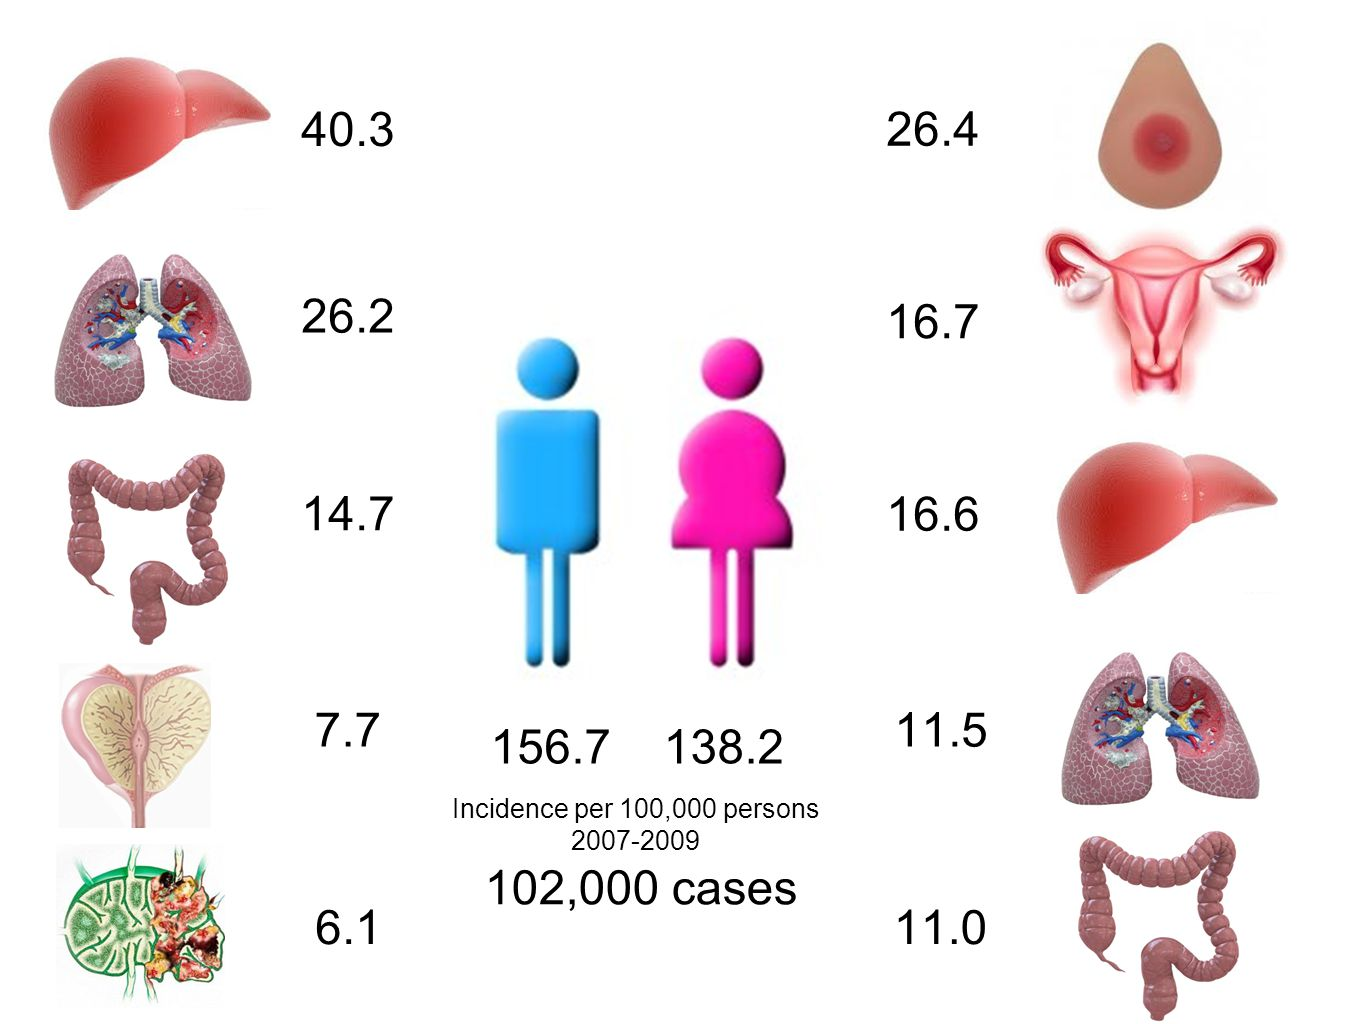 Top 5 Cancer trends Female Years Cancer in Thailand 1990-2009 26.4 16.7 16.6 11.5 11